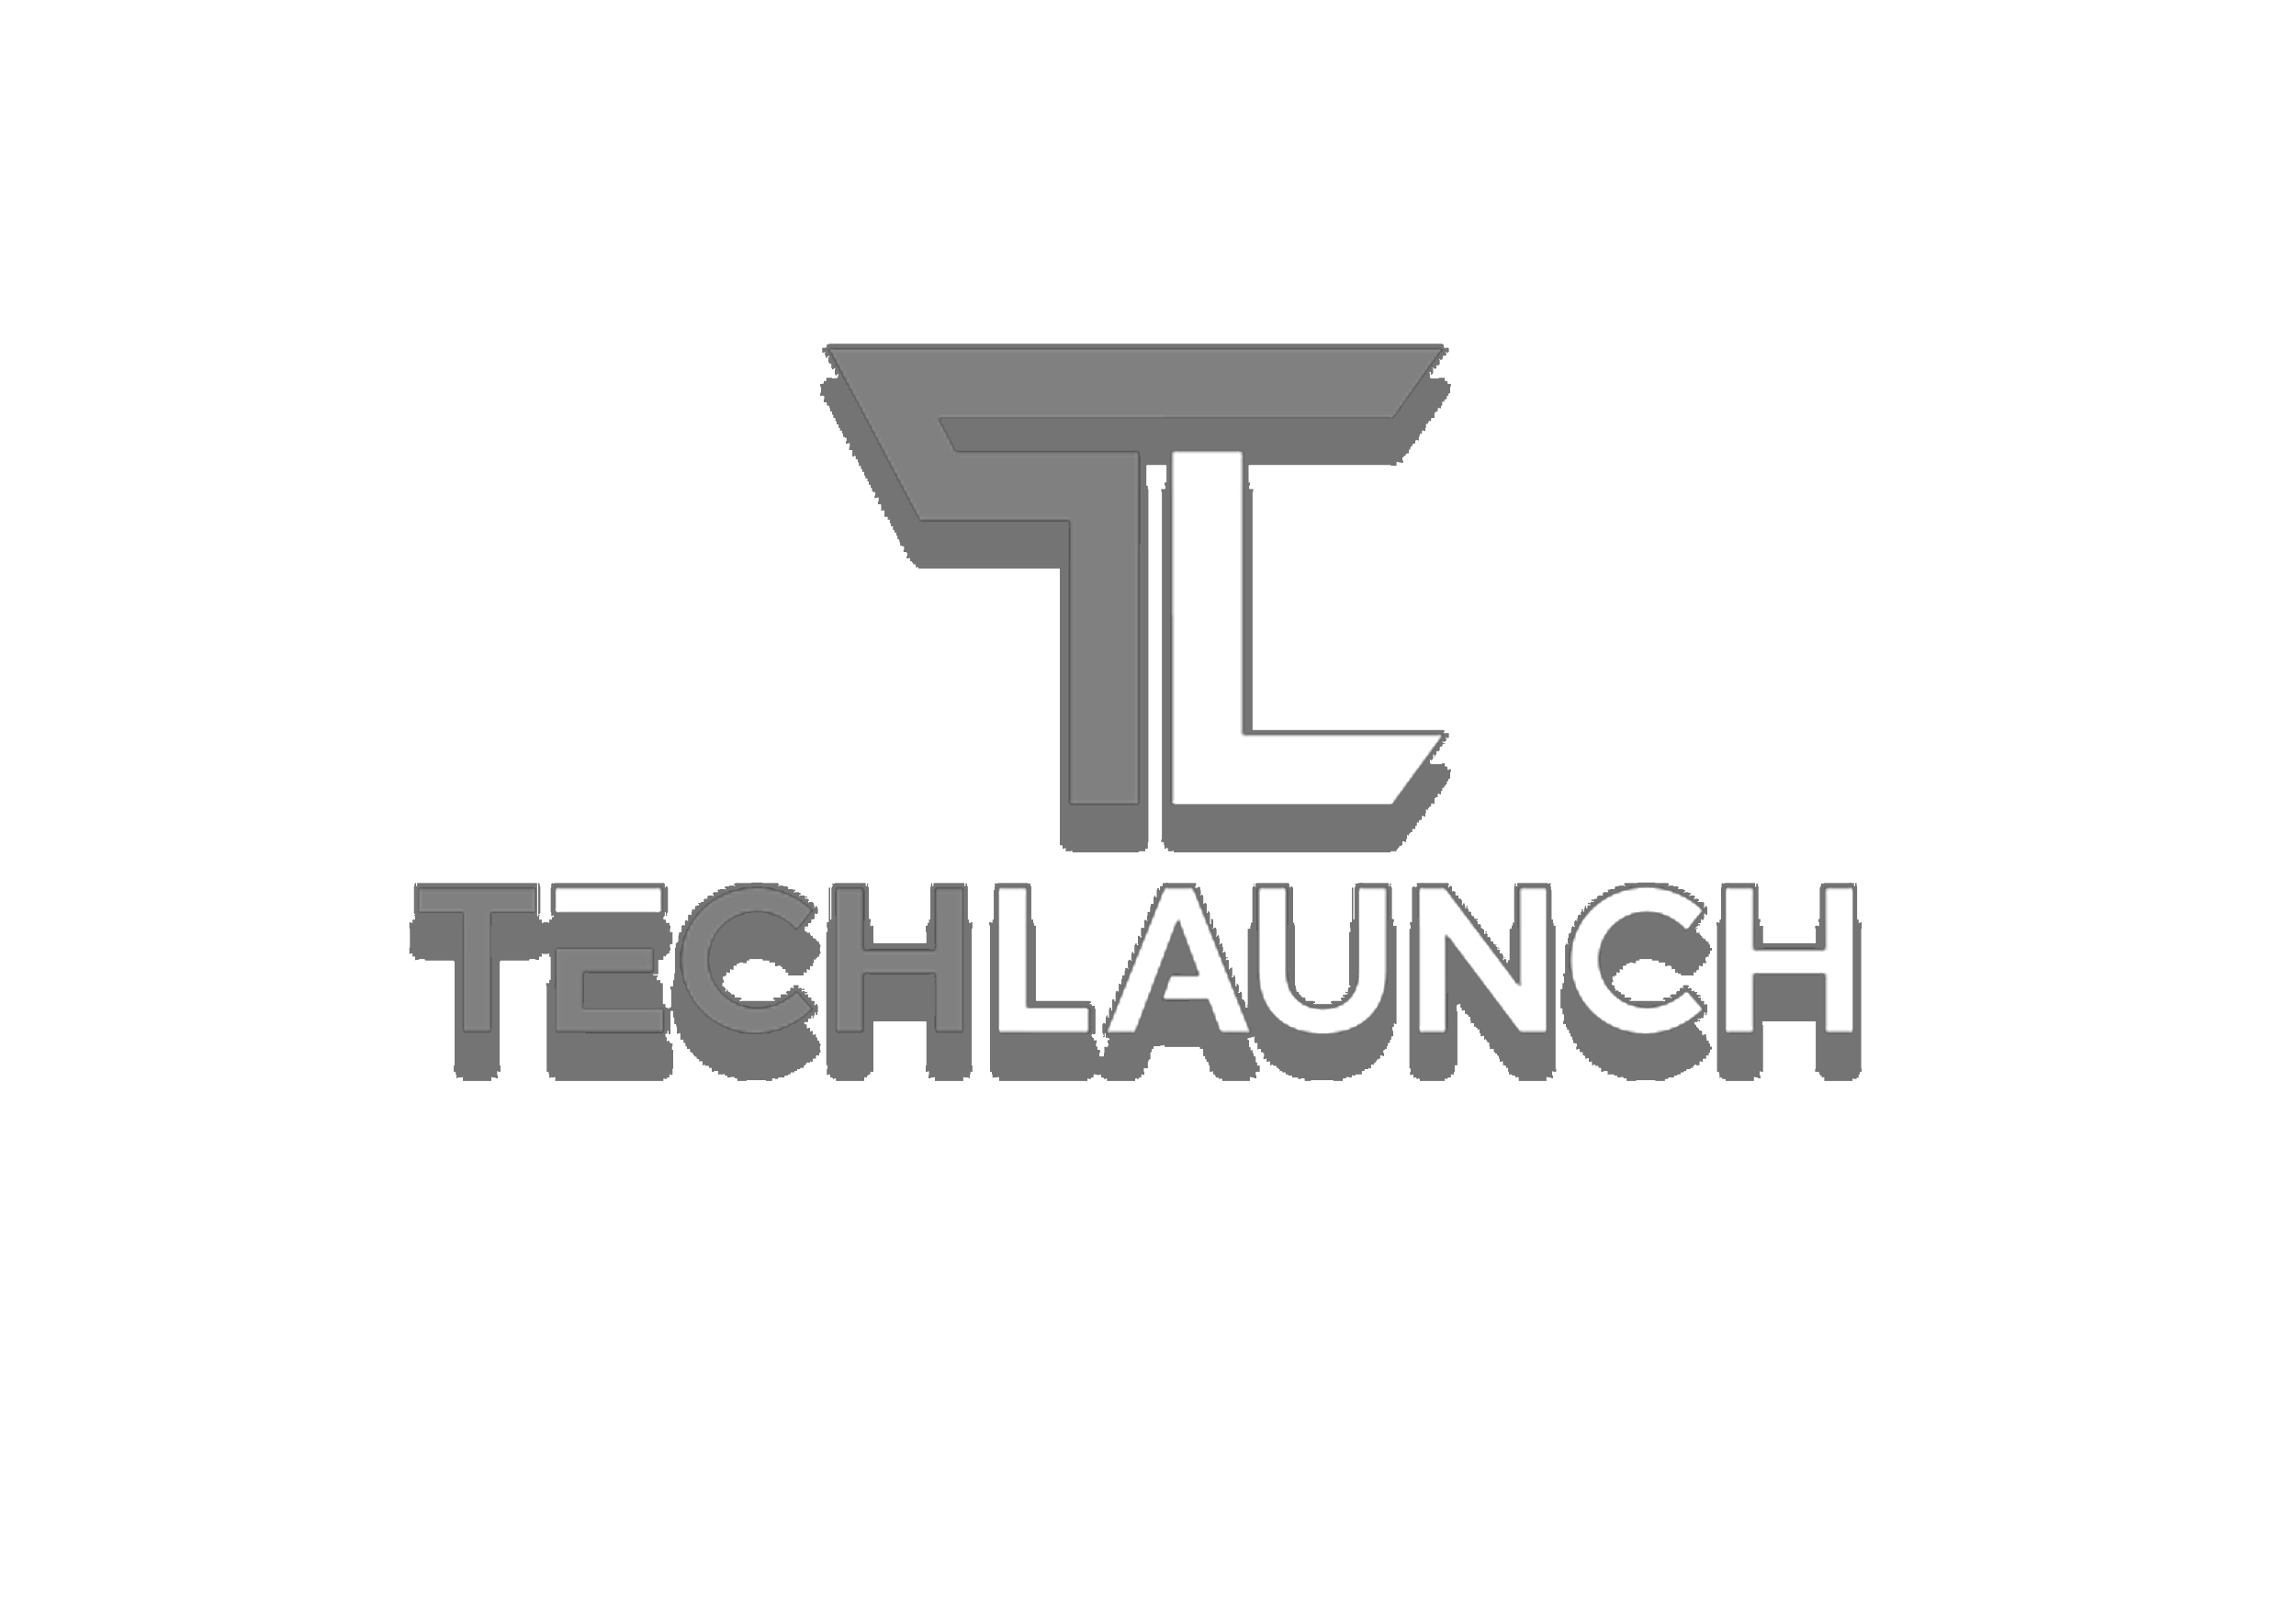 techlaunch copy copy.png